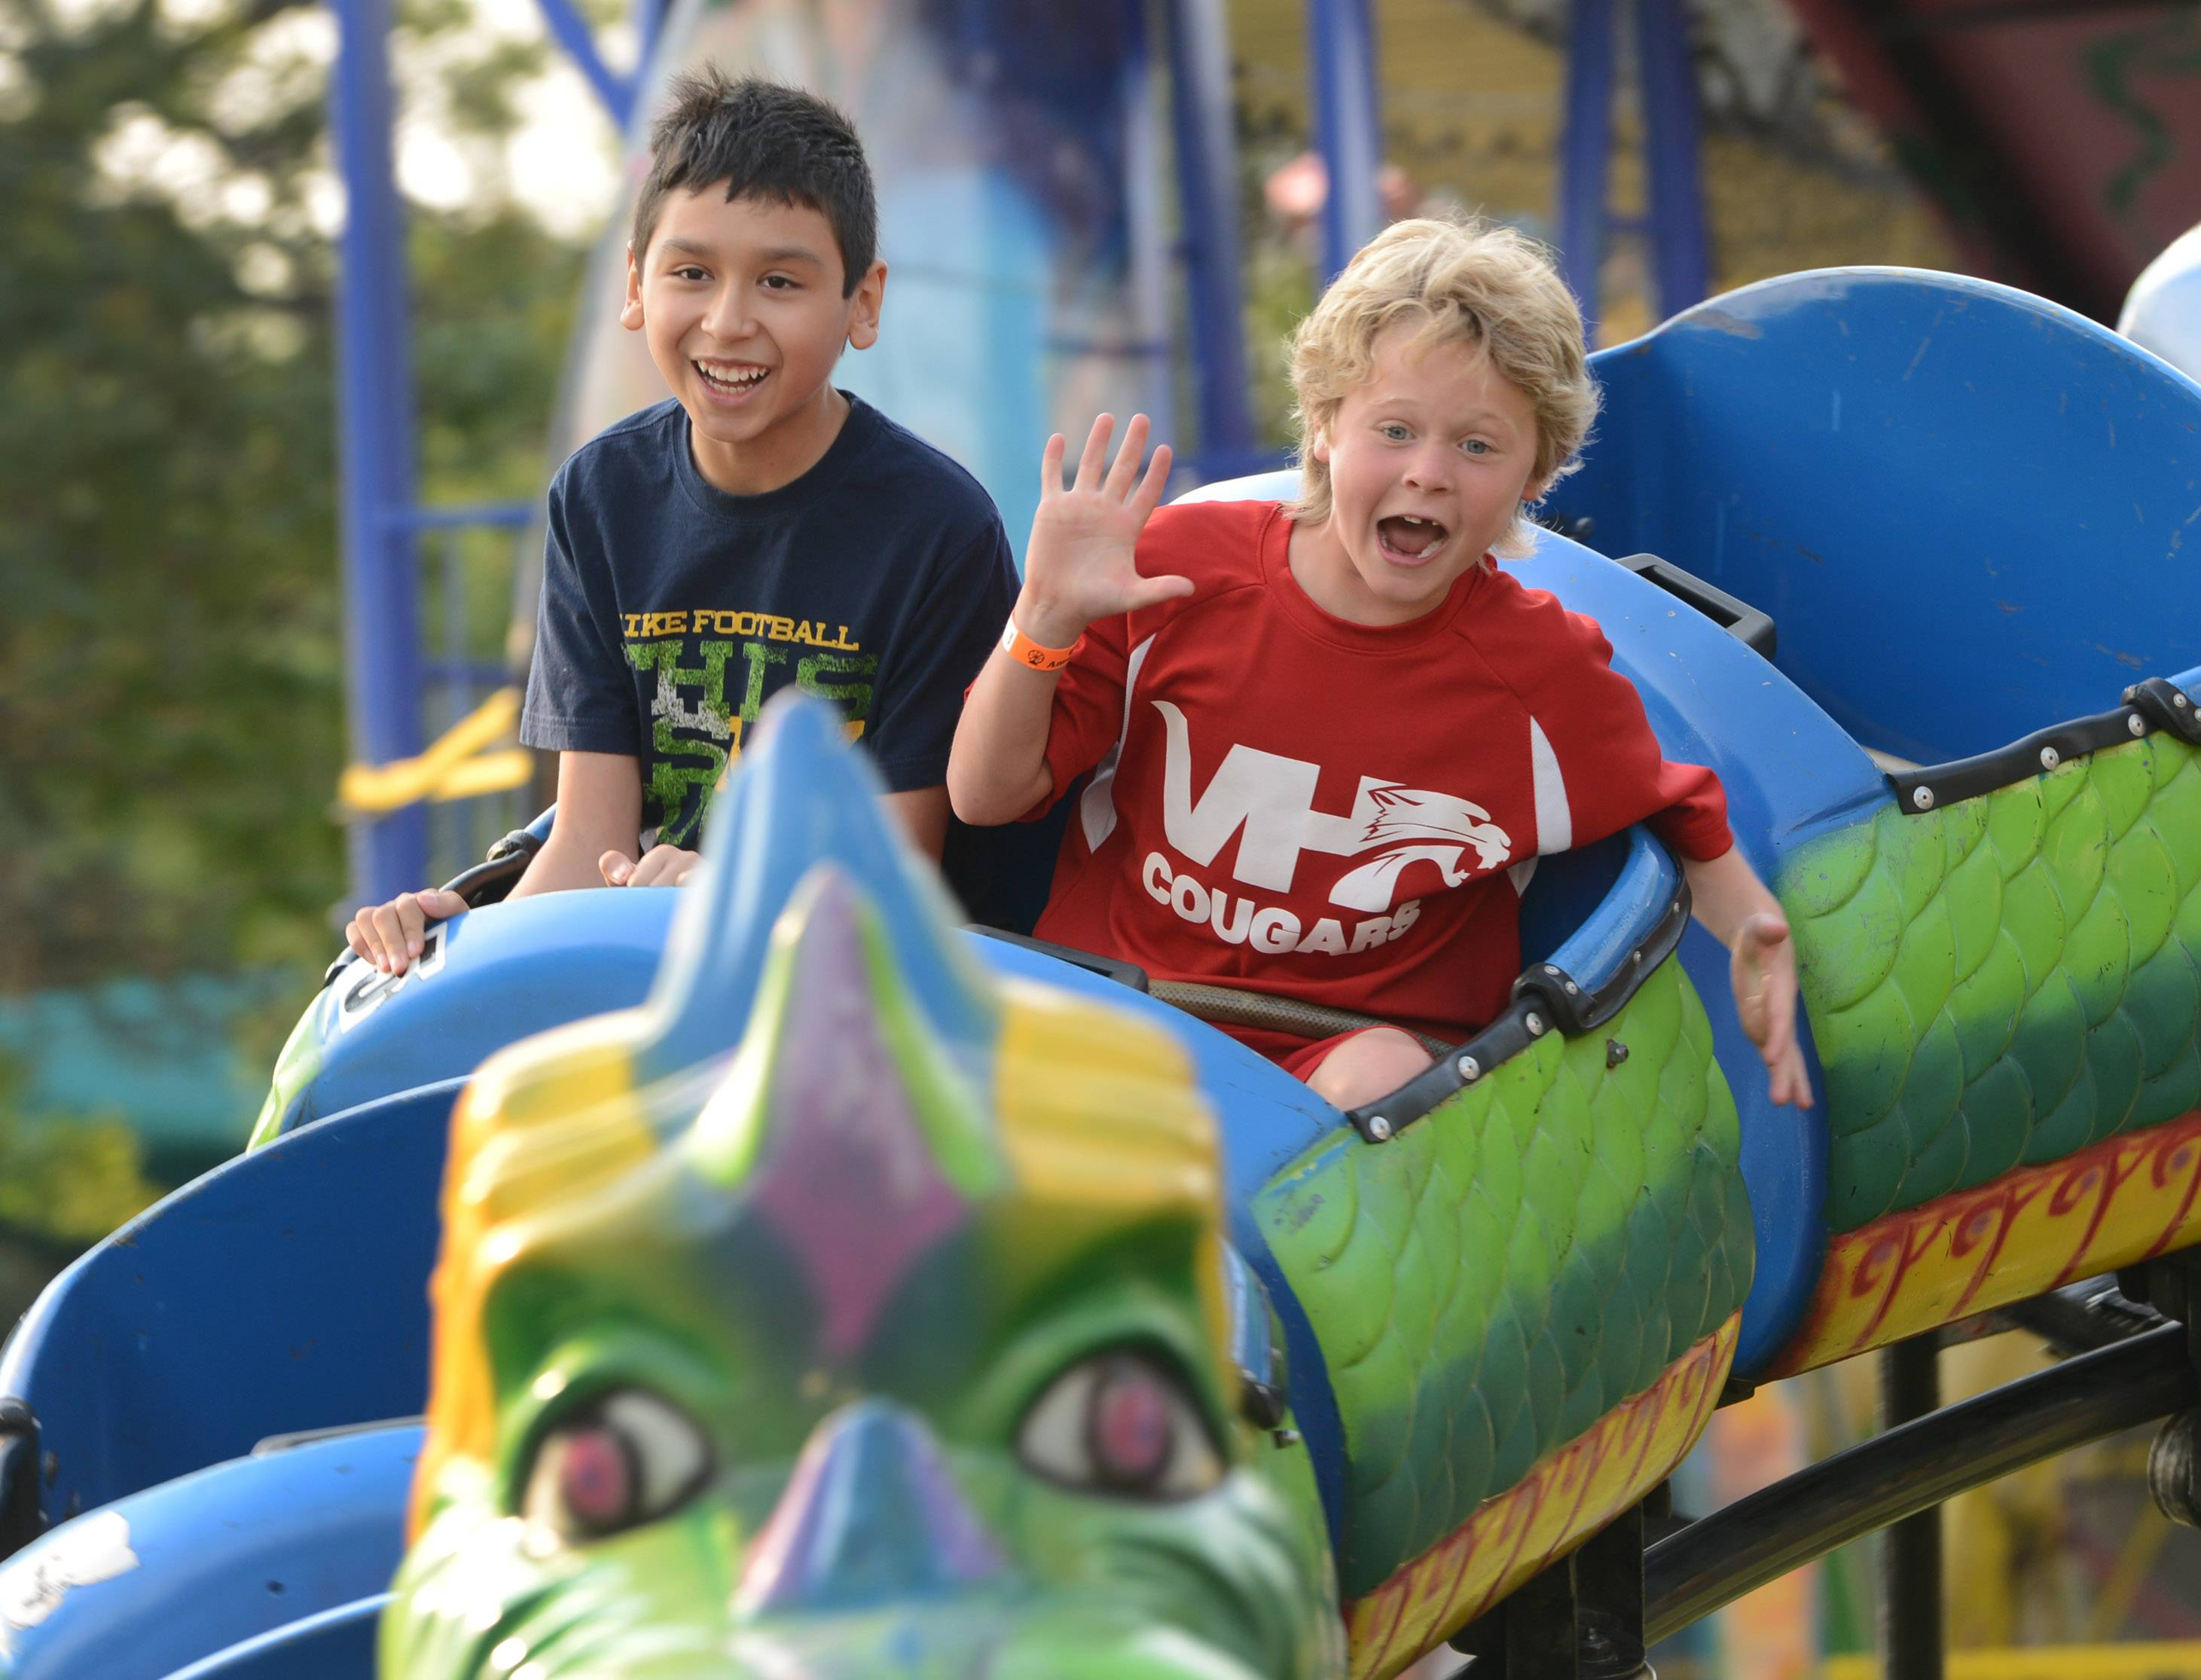 Alex Dominguez, left, 12, of Mundelein, and Jonathan Protus, 7, of Vernon Hills, enjoy the Dragon Wagon ride Thursday night at the Vernon Hills Summer Celebration in Century Park.